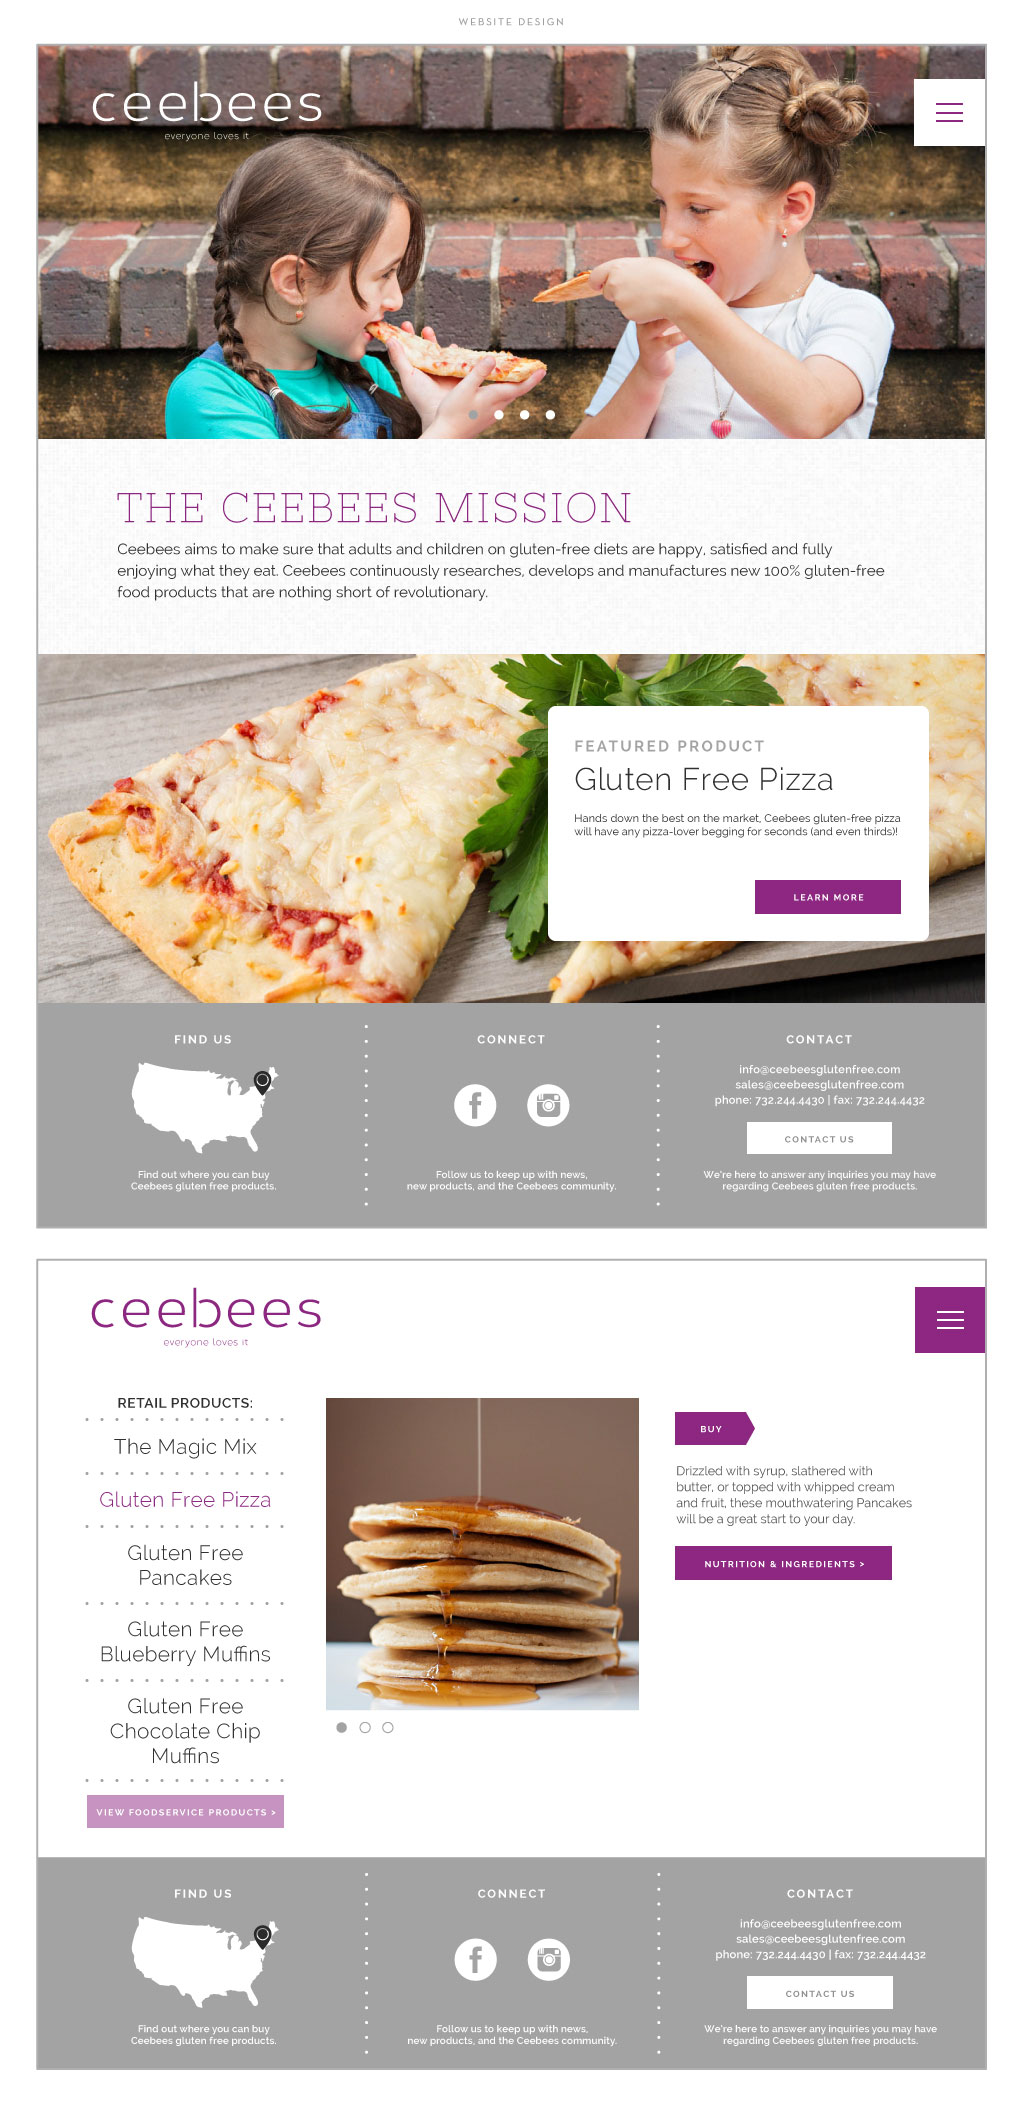 Ceebees web design by M studio